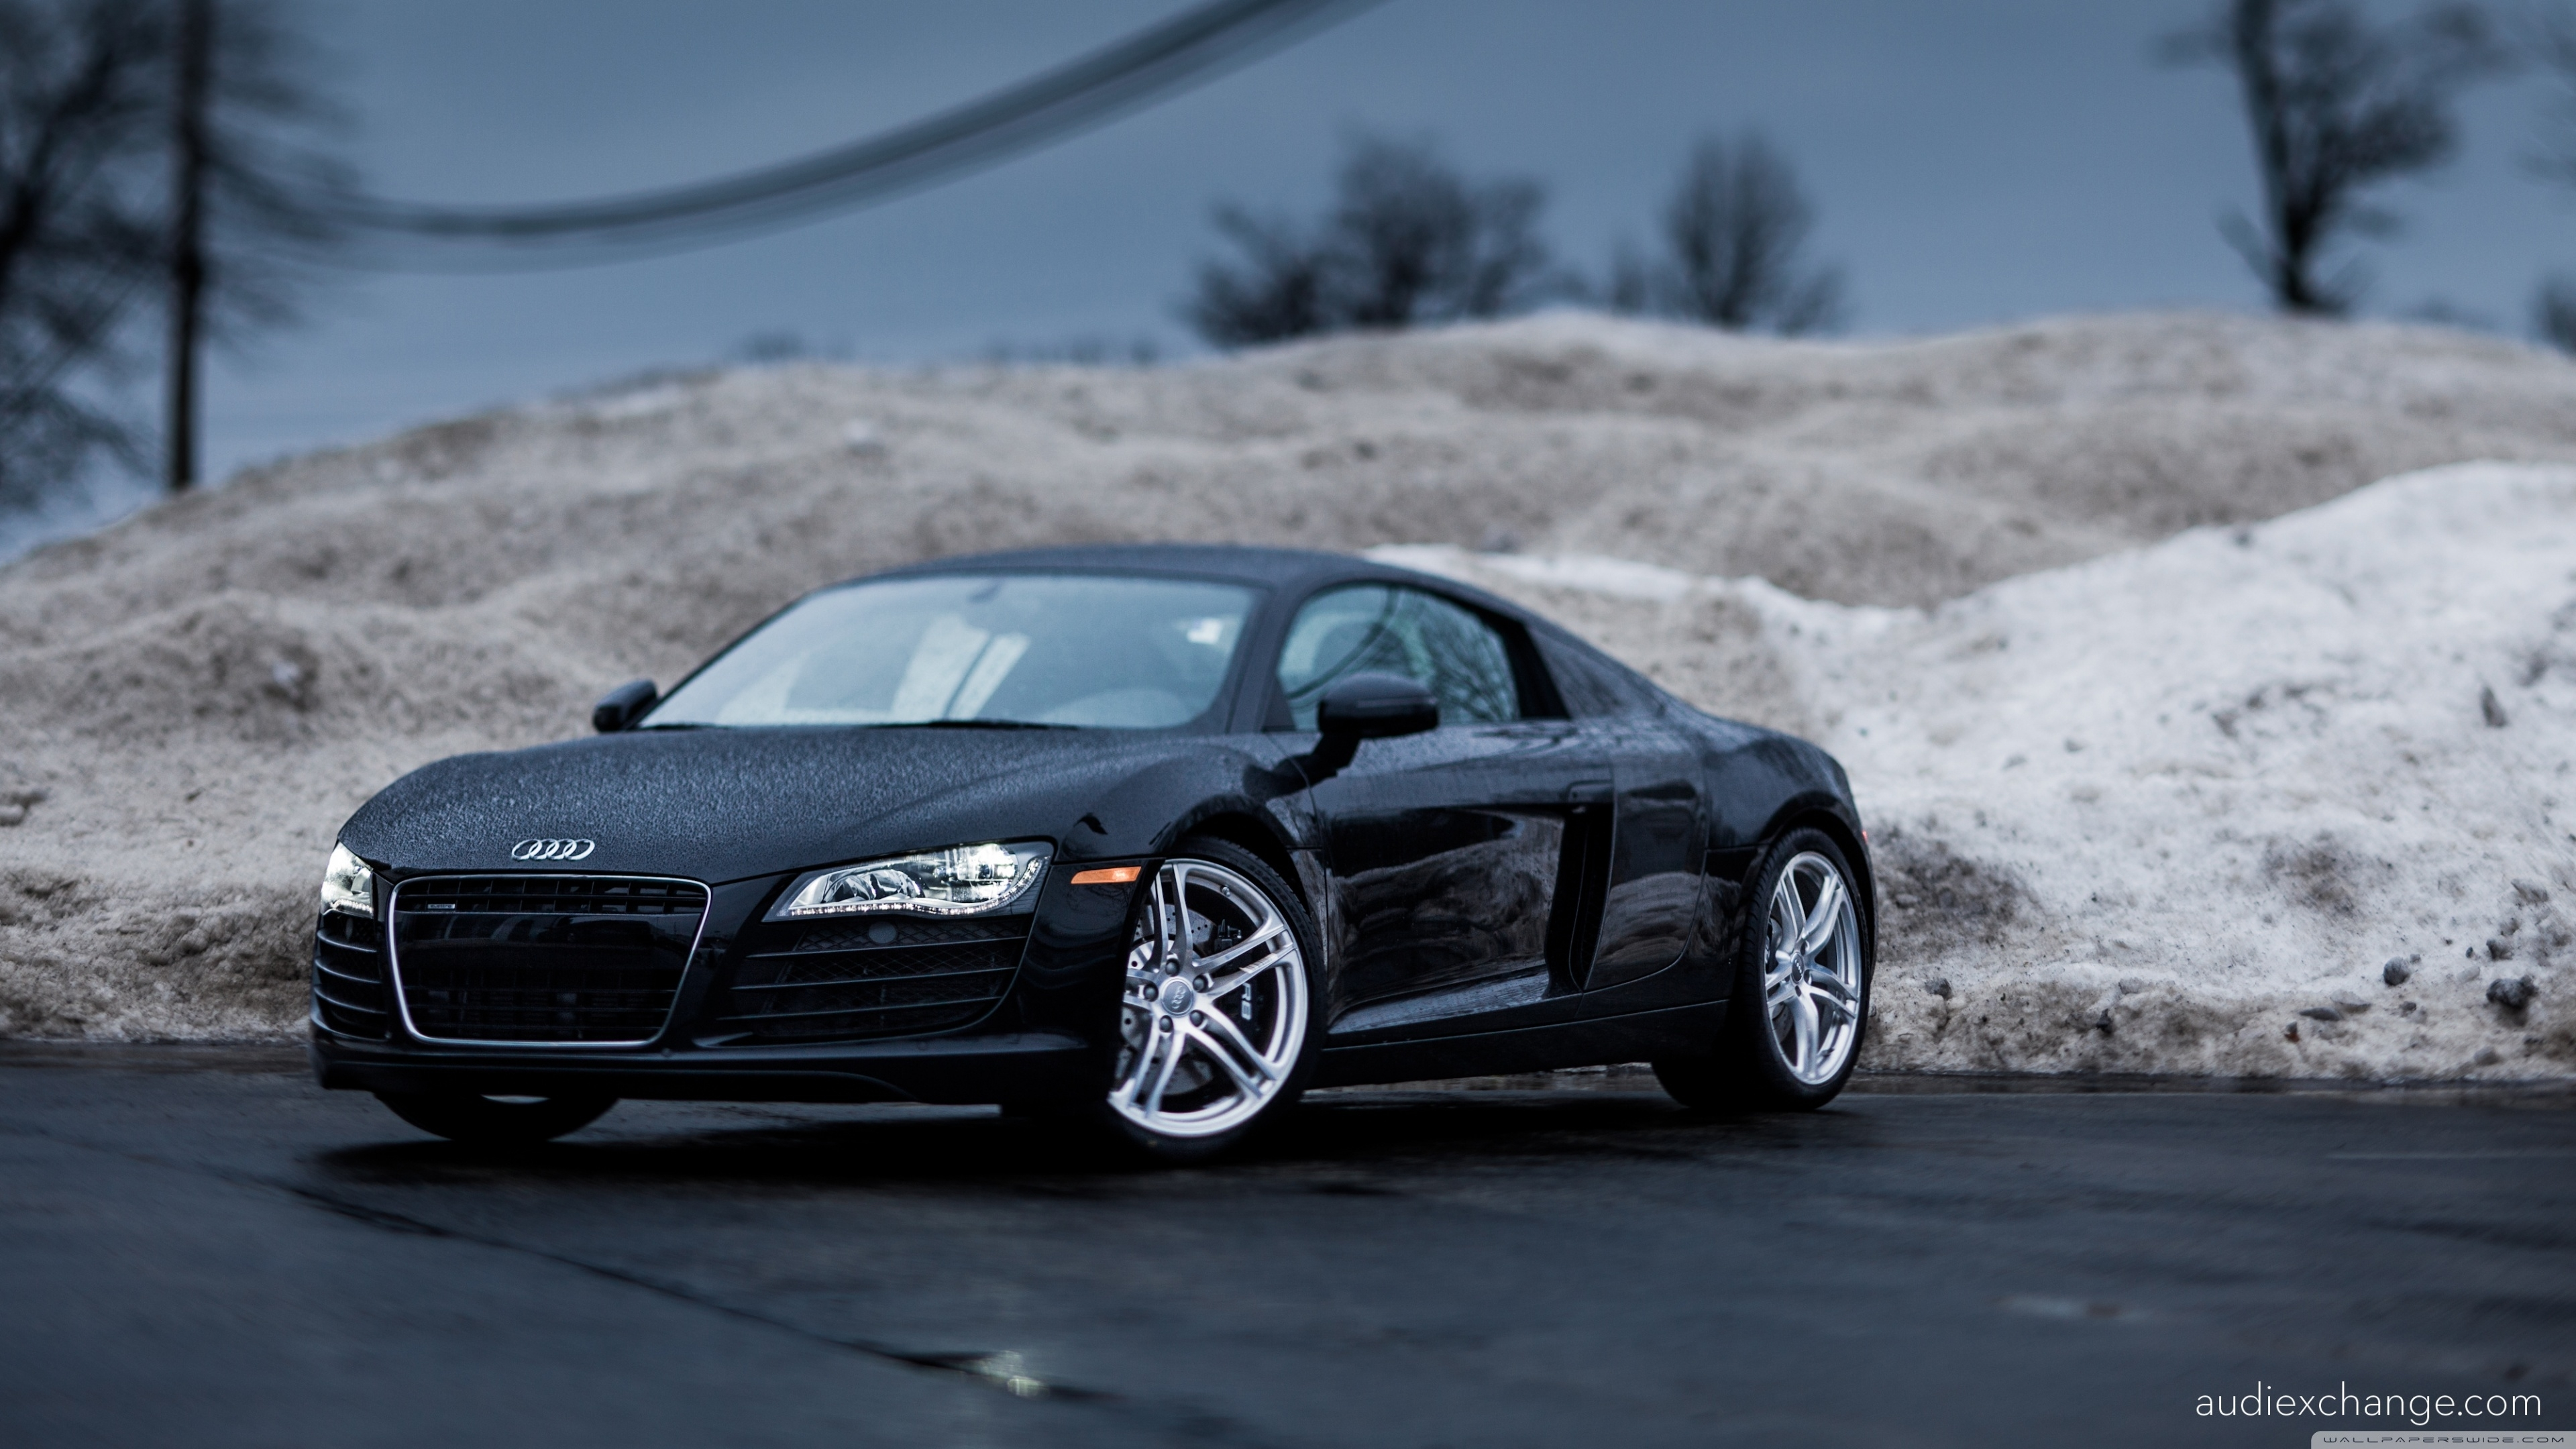 black audi r8 4.2 v8 coupe, photographed with a tilt-shift lens